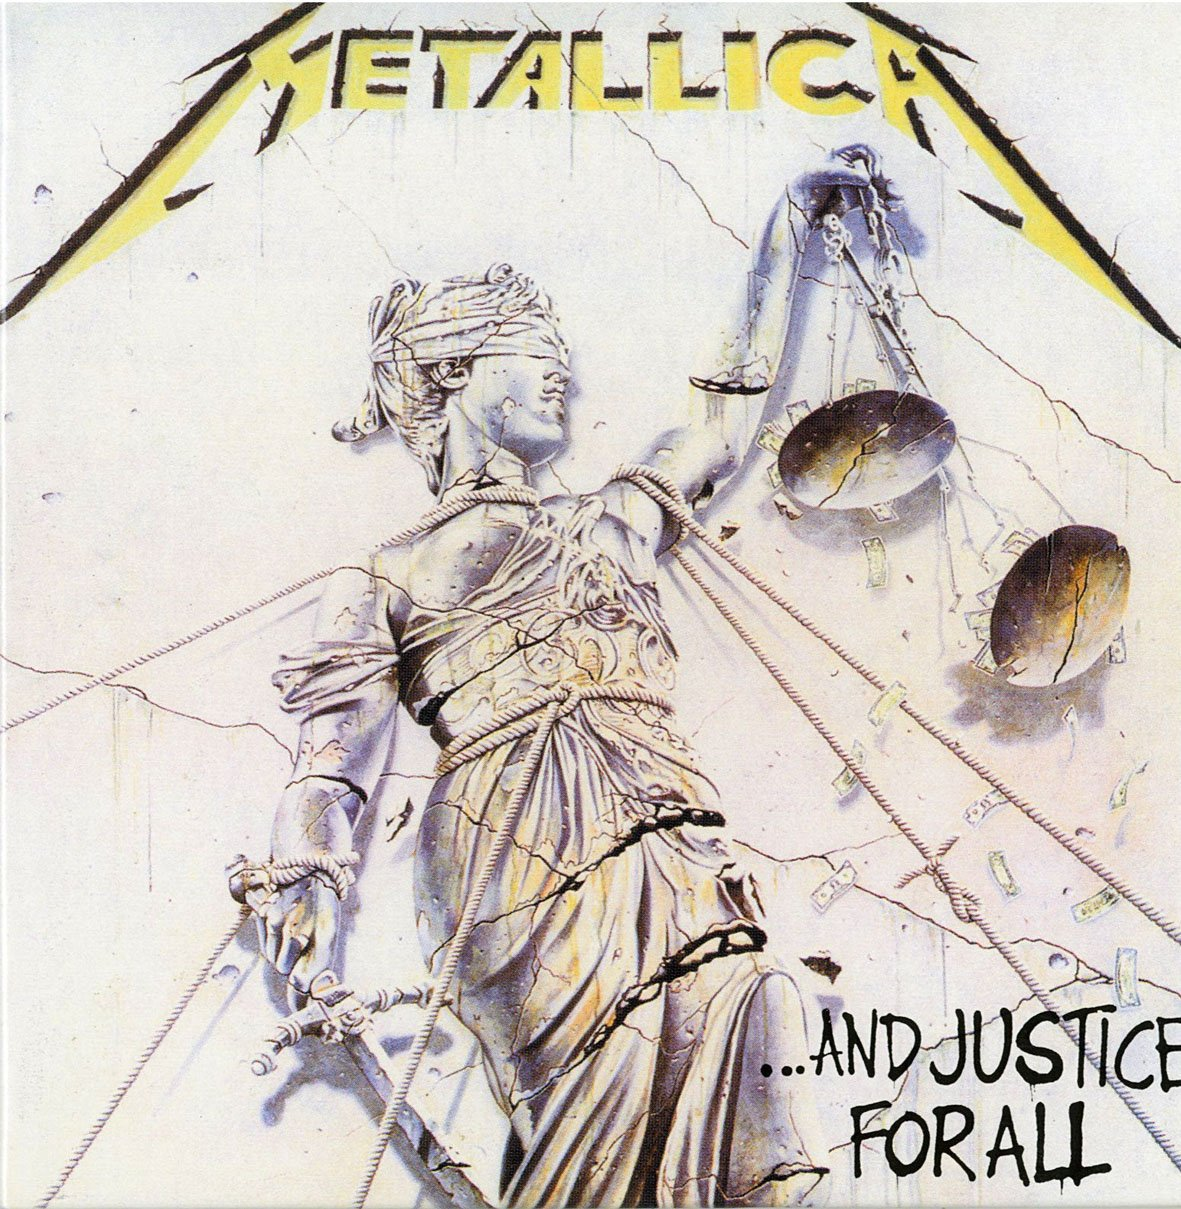 metallica and justice for all wallpaper   Quotekocom 1181x1209